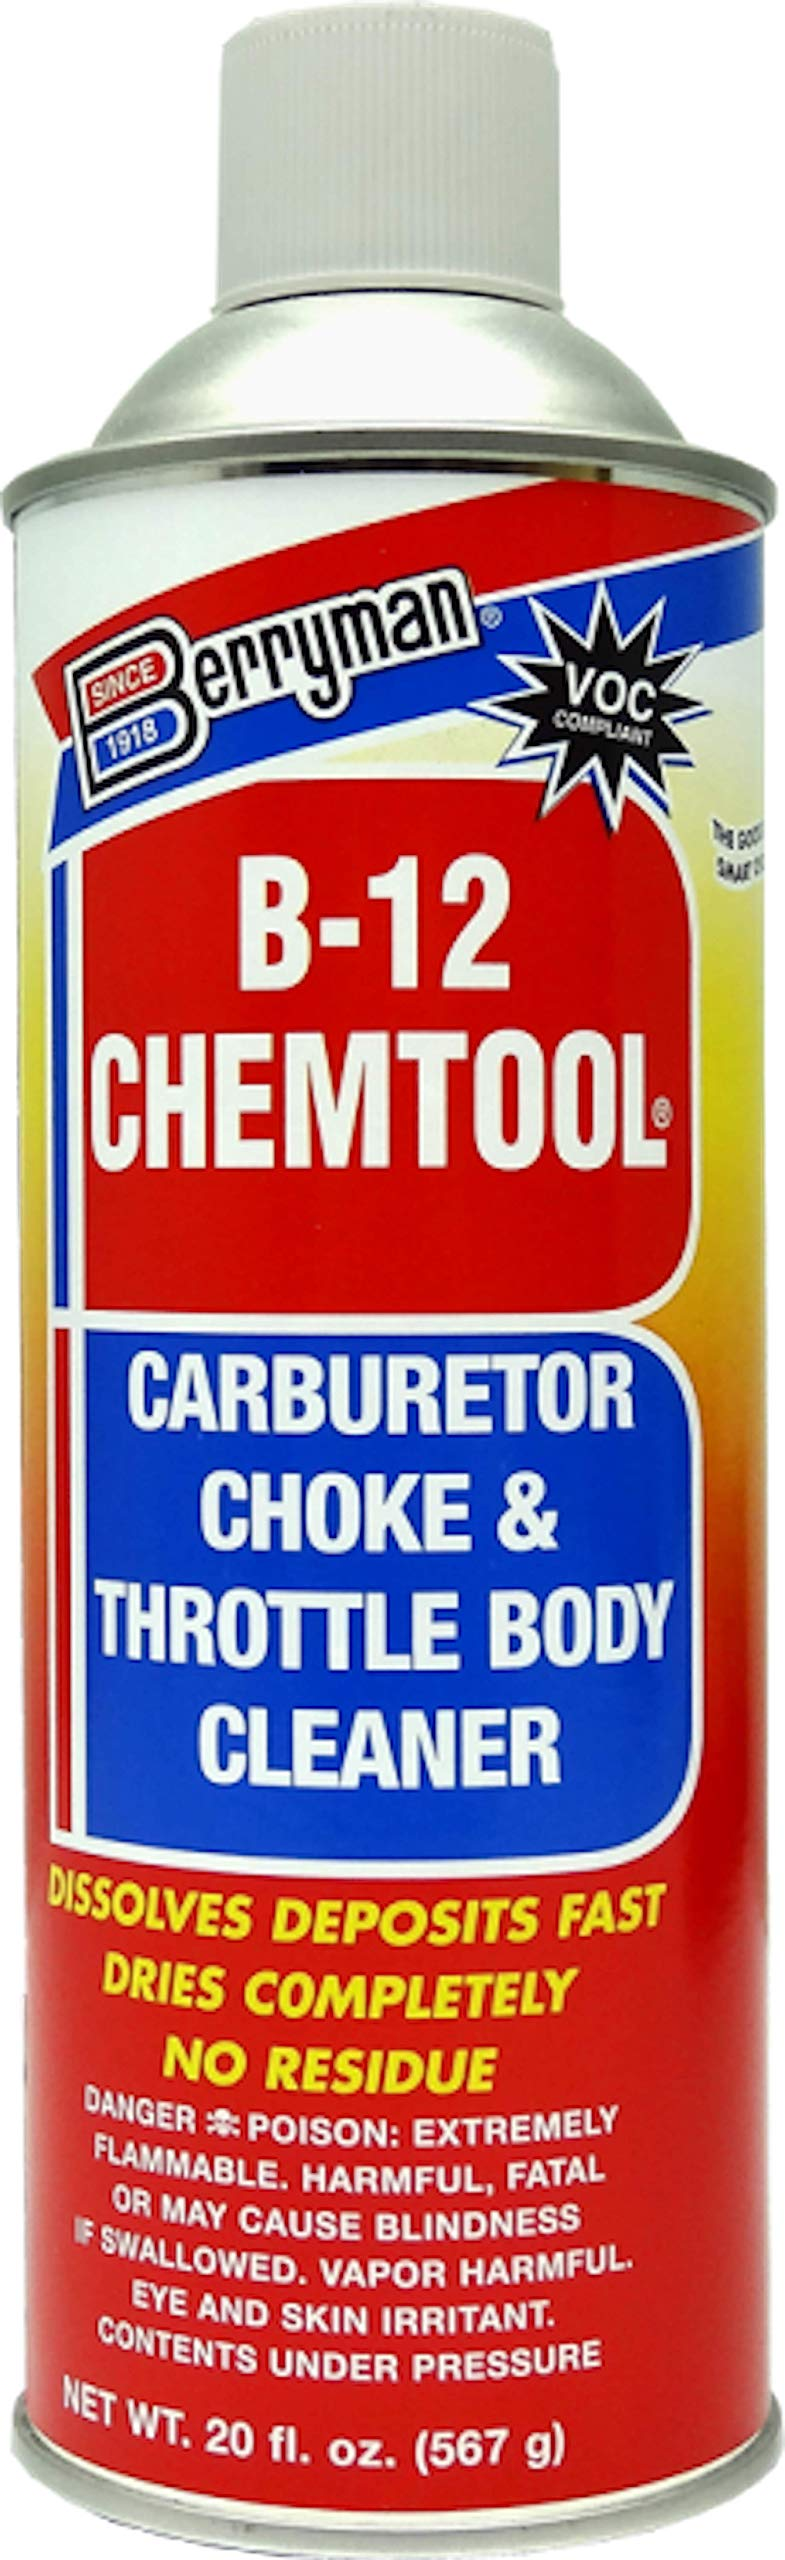 Berryman B-12 Chemtool Carburetor, Choke & Throttle Body Cleaner with Extension Tube [VOC Compliant In All 50 States], 20-ounce aerosol, 0120C